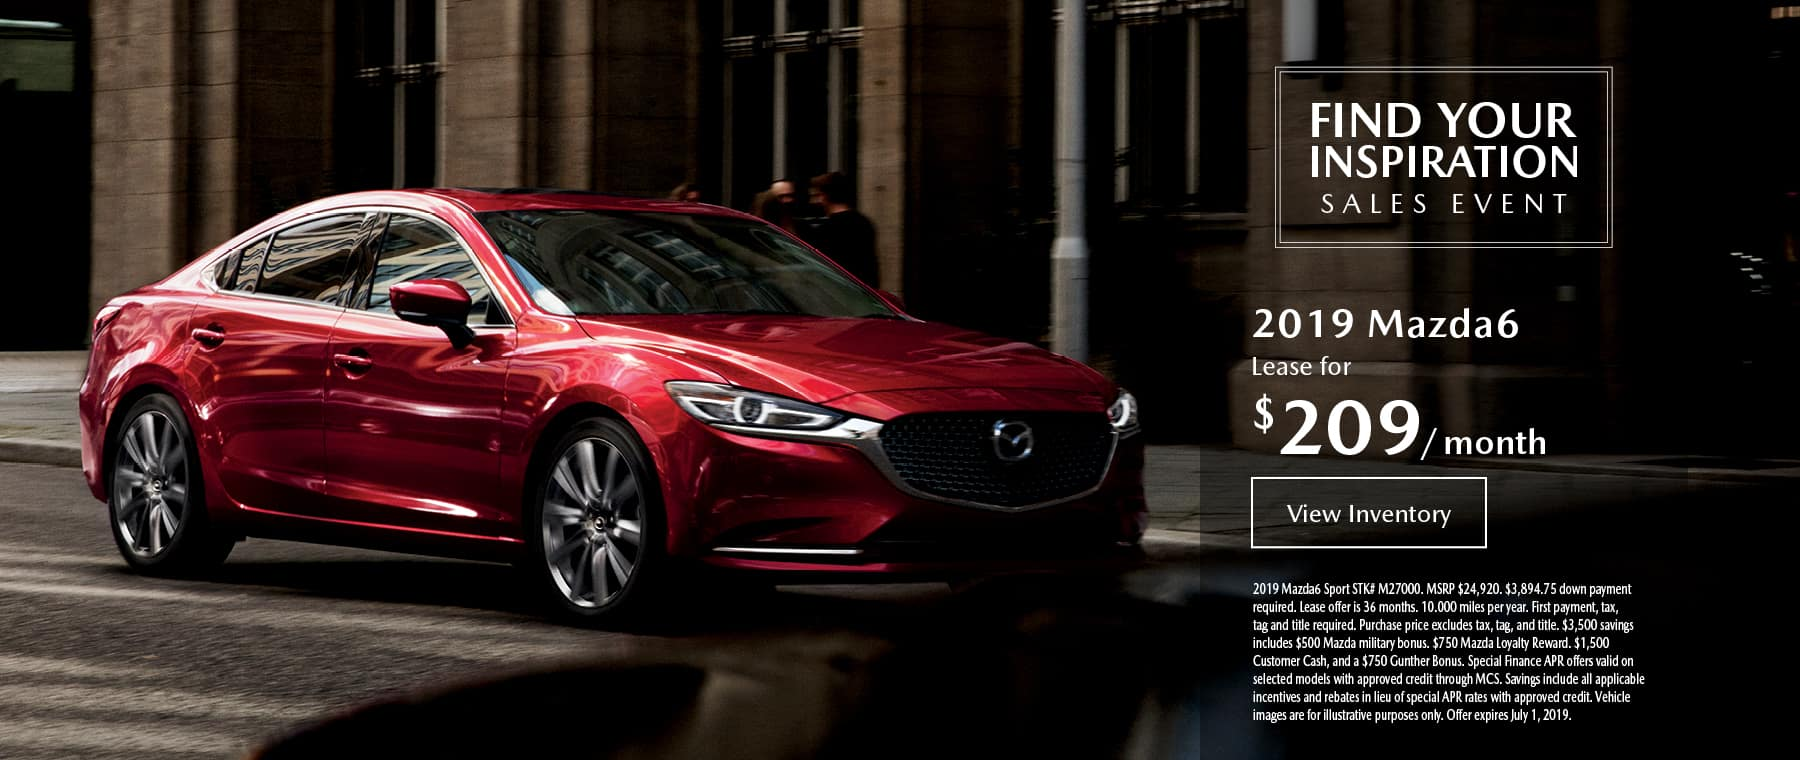 Lease the 2019 Mazda6 for $209 per month, plus tax.